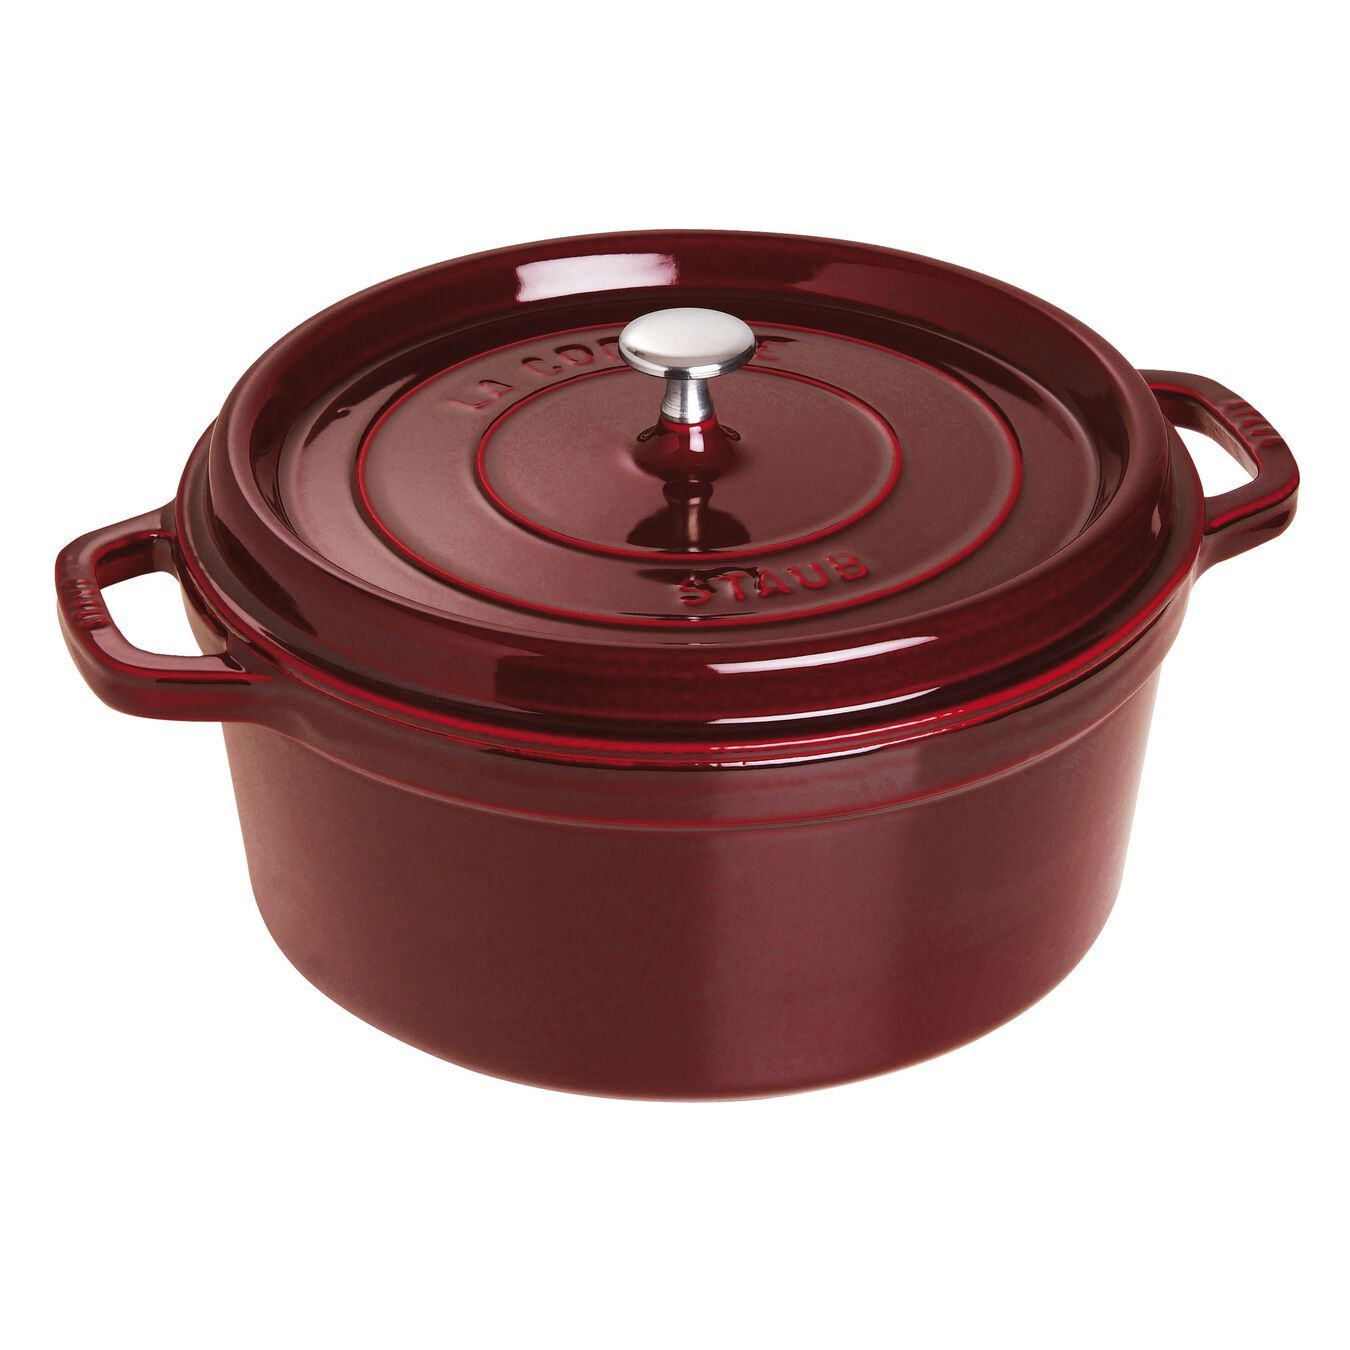 6.75 l Cast iron round Cocotte, Grenadine-Red,,large 1